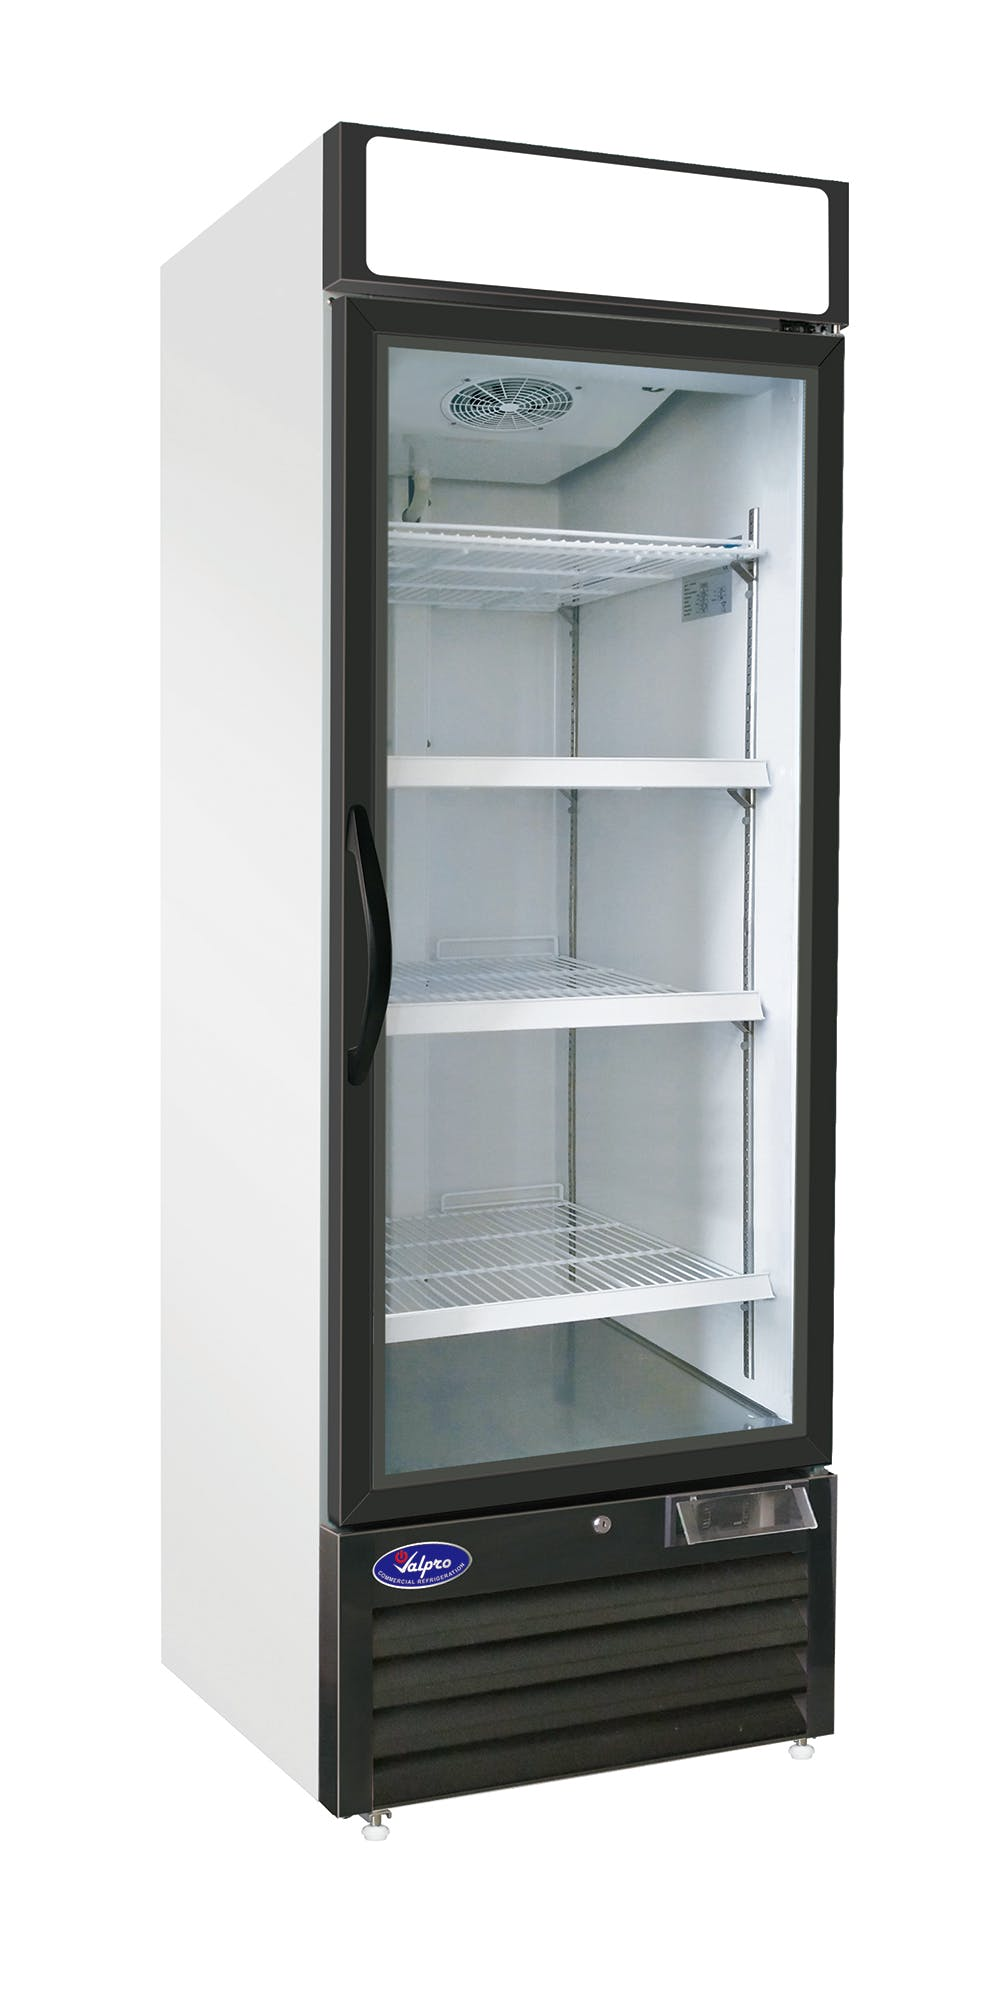 Valpro VP1R-23 - One Swing Glass Door - 23 cu. ft. Refrigerator